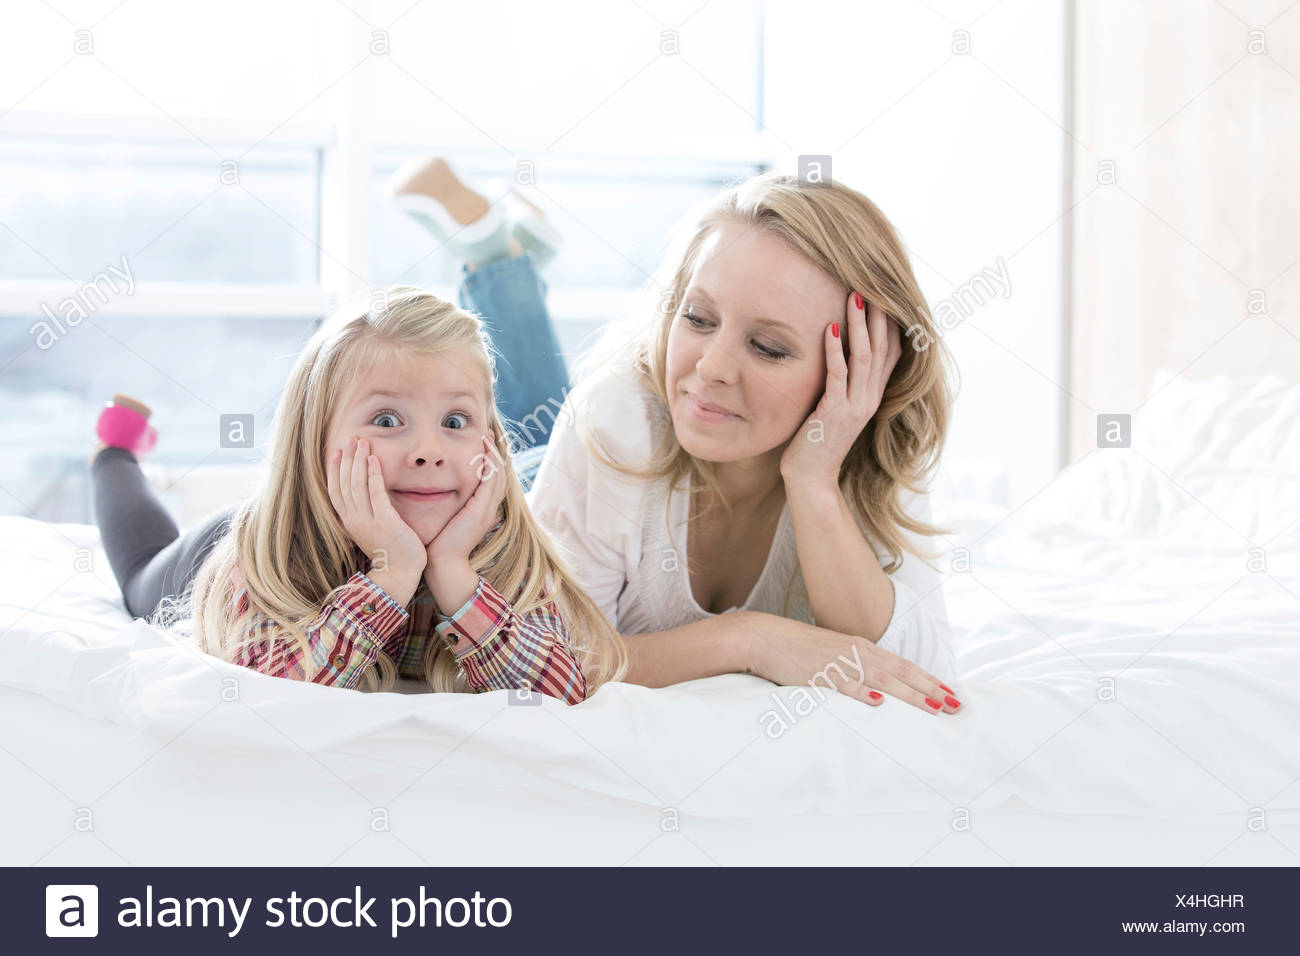 Mother looking at cute daughter making faces while lying in bed - Stock Image